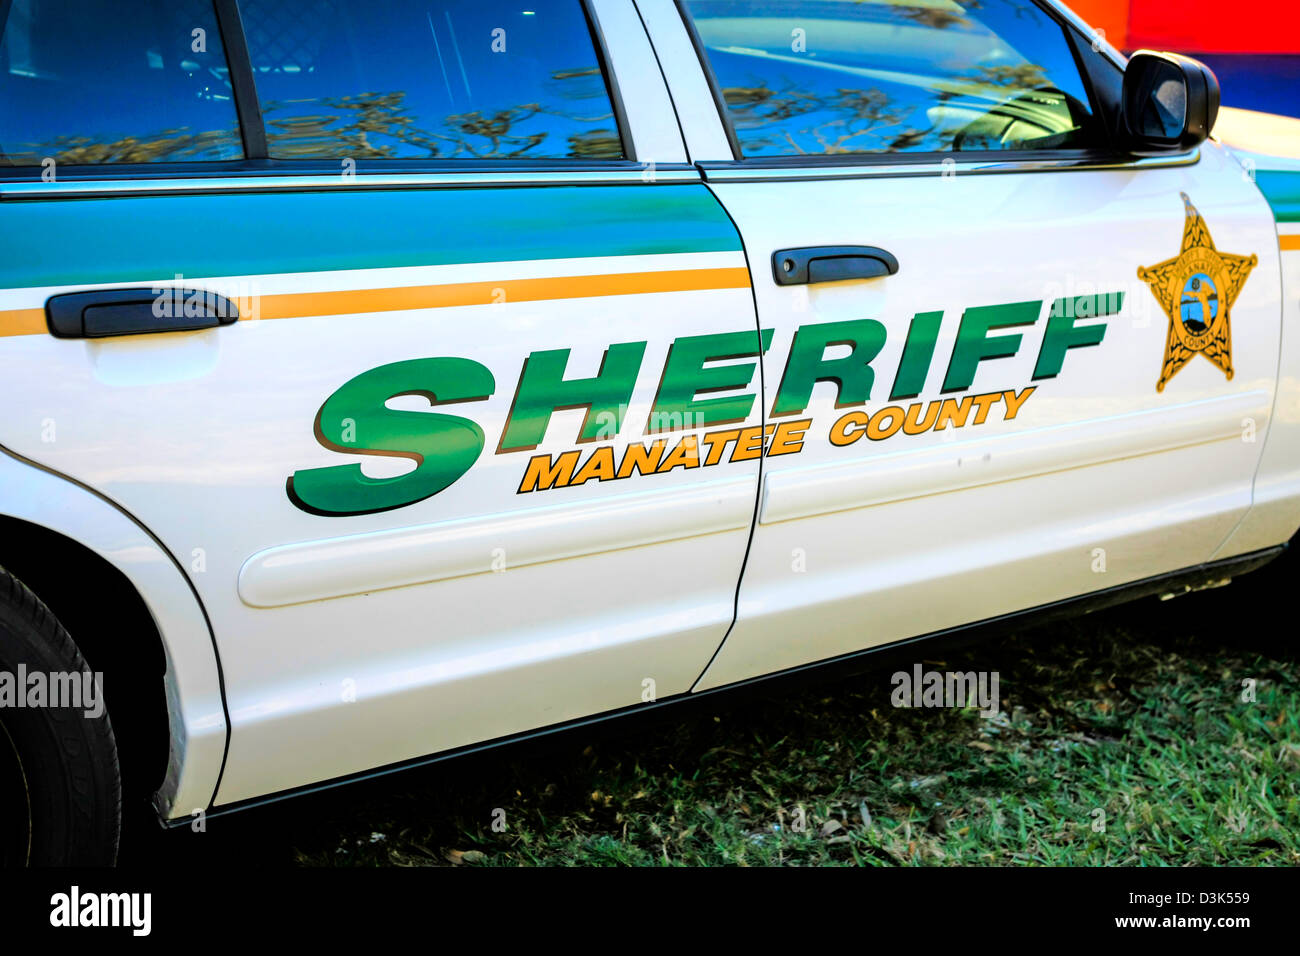 American sheriff car vehicle stockfotos american sheriff for Manatee county department of motor vehicles